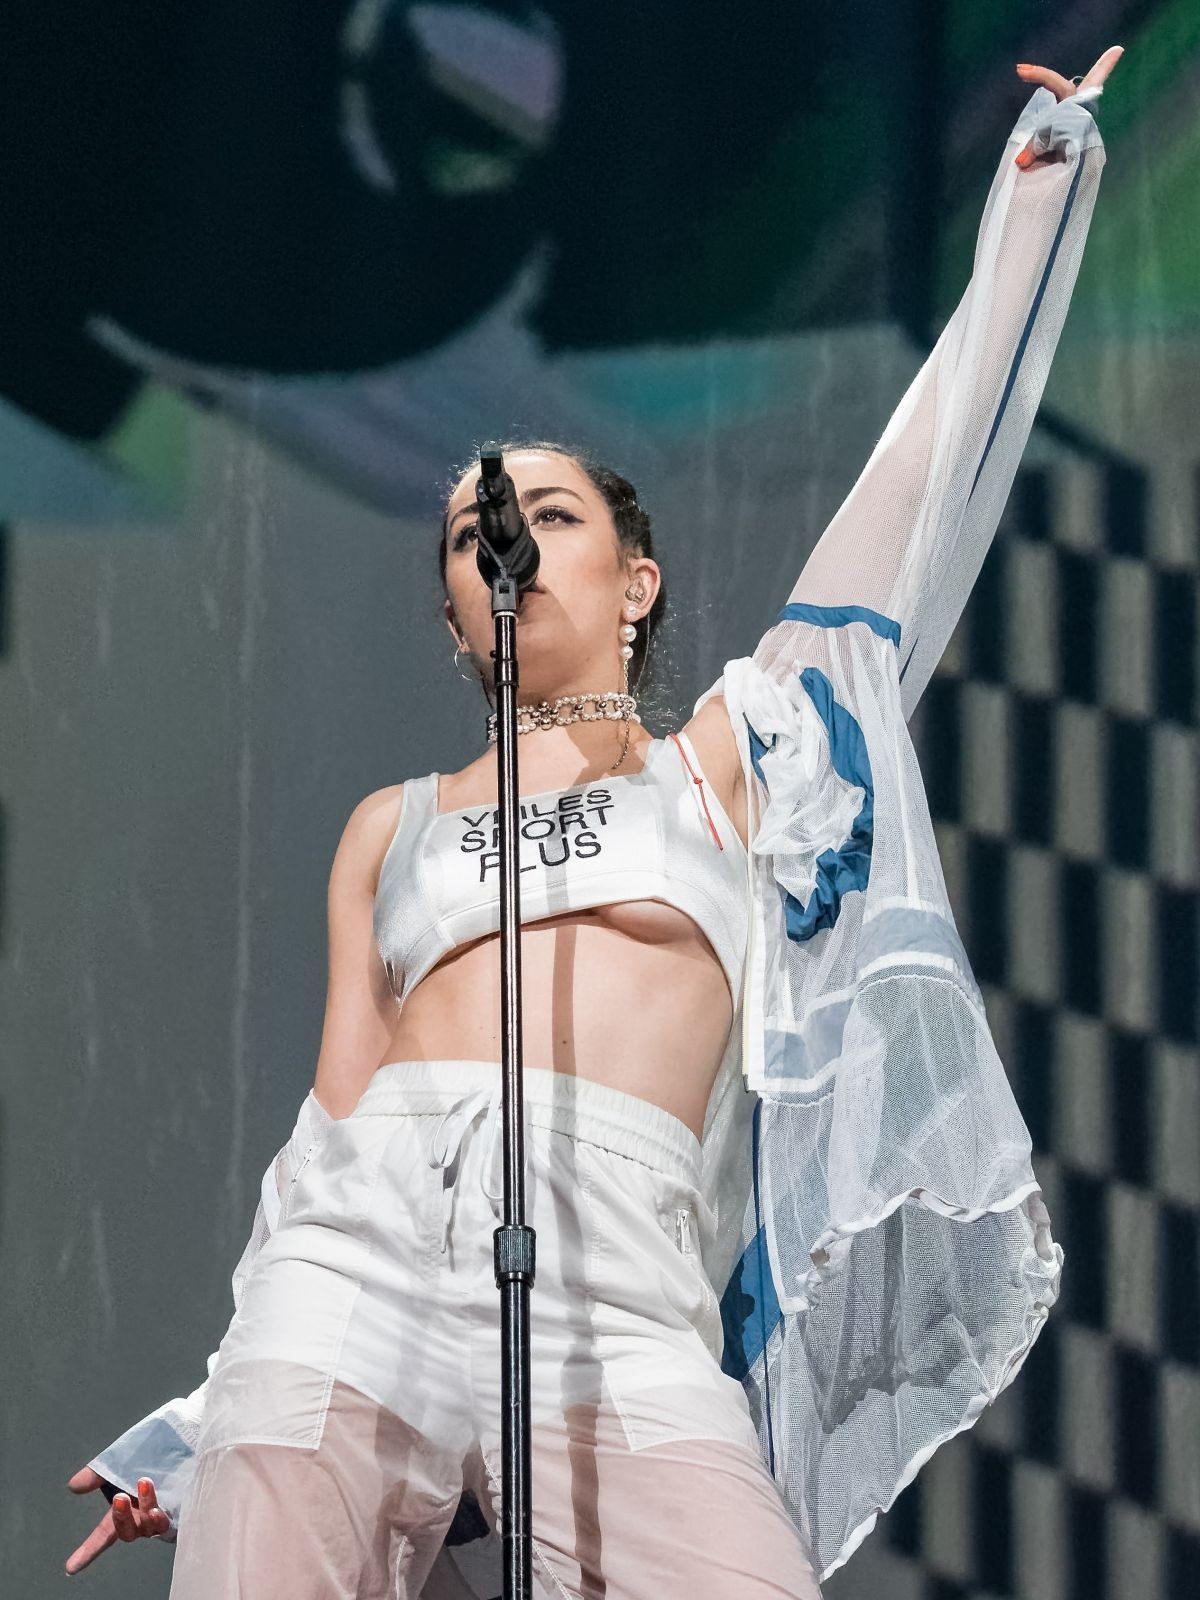 Charli XCX Puts on a show at the Amway Center in Orlando